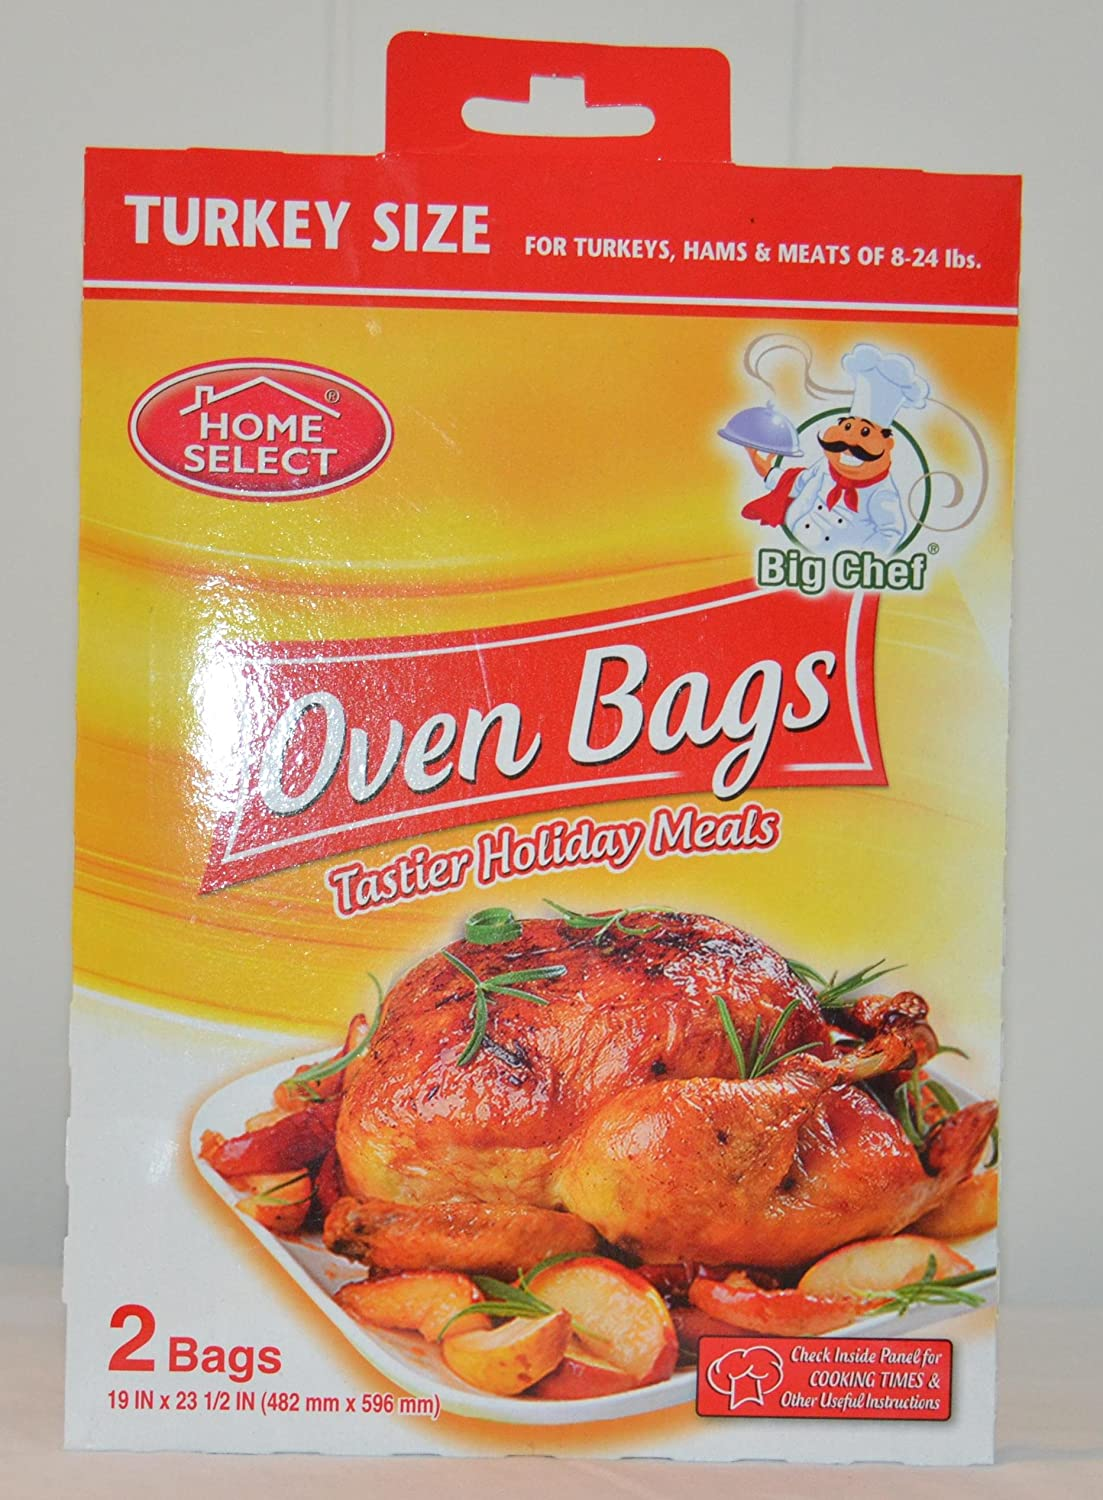 Home Select Big Check Oven Bags Turkey Size 2 Bags